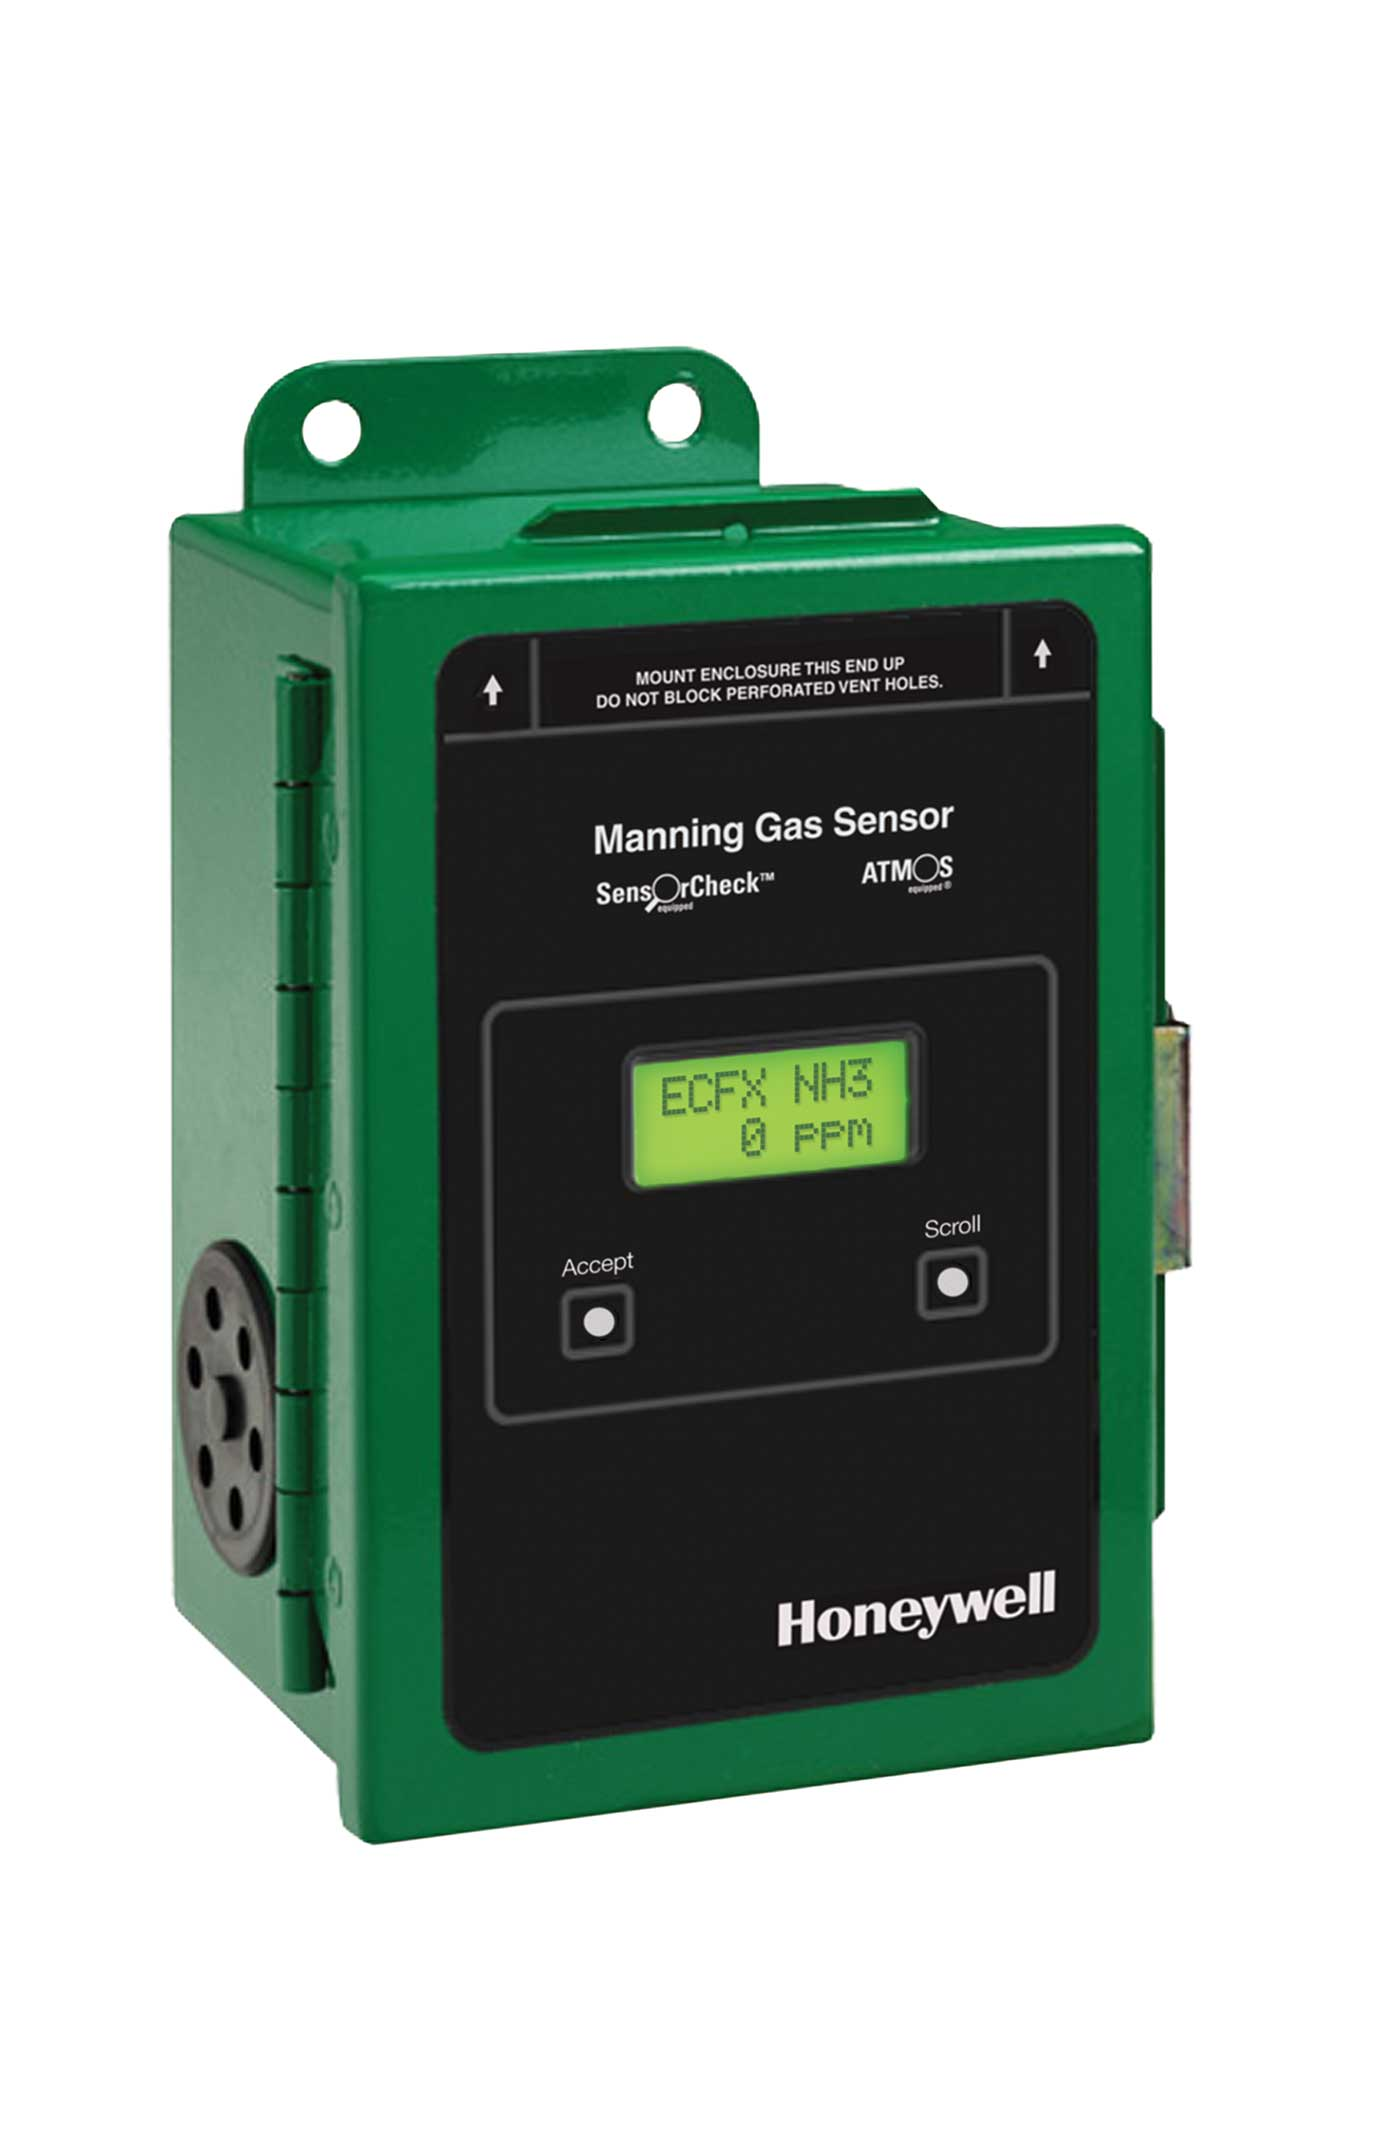 Honeywell main product image